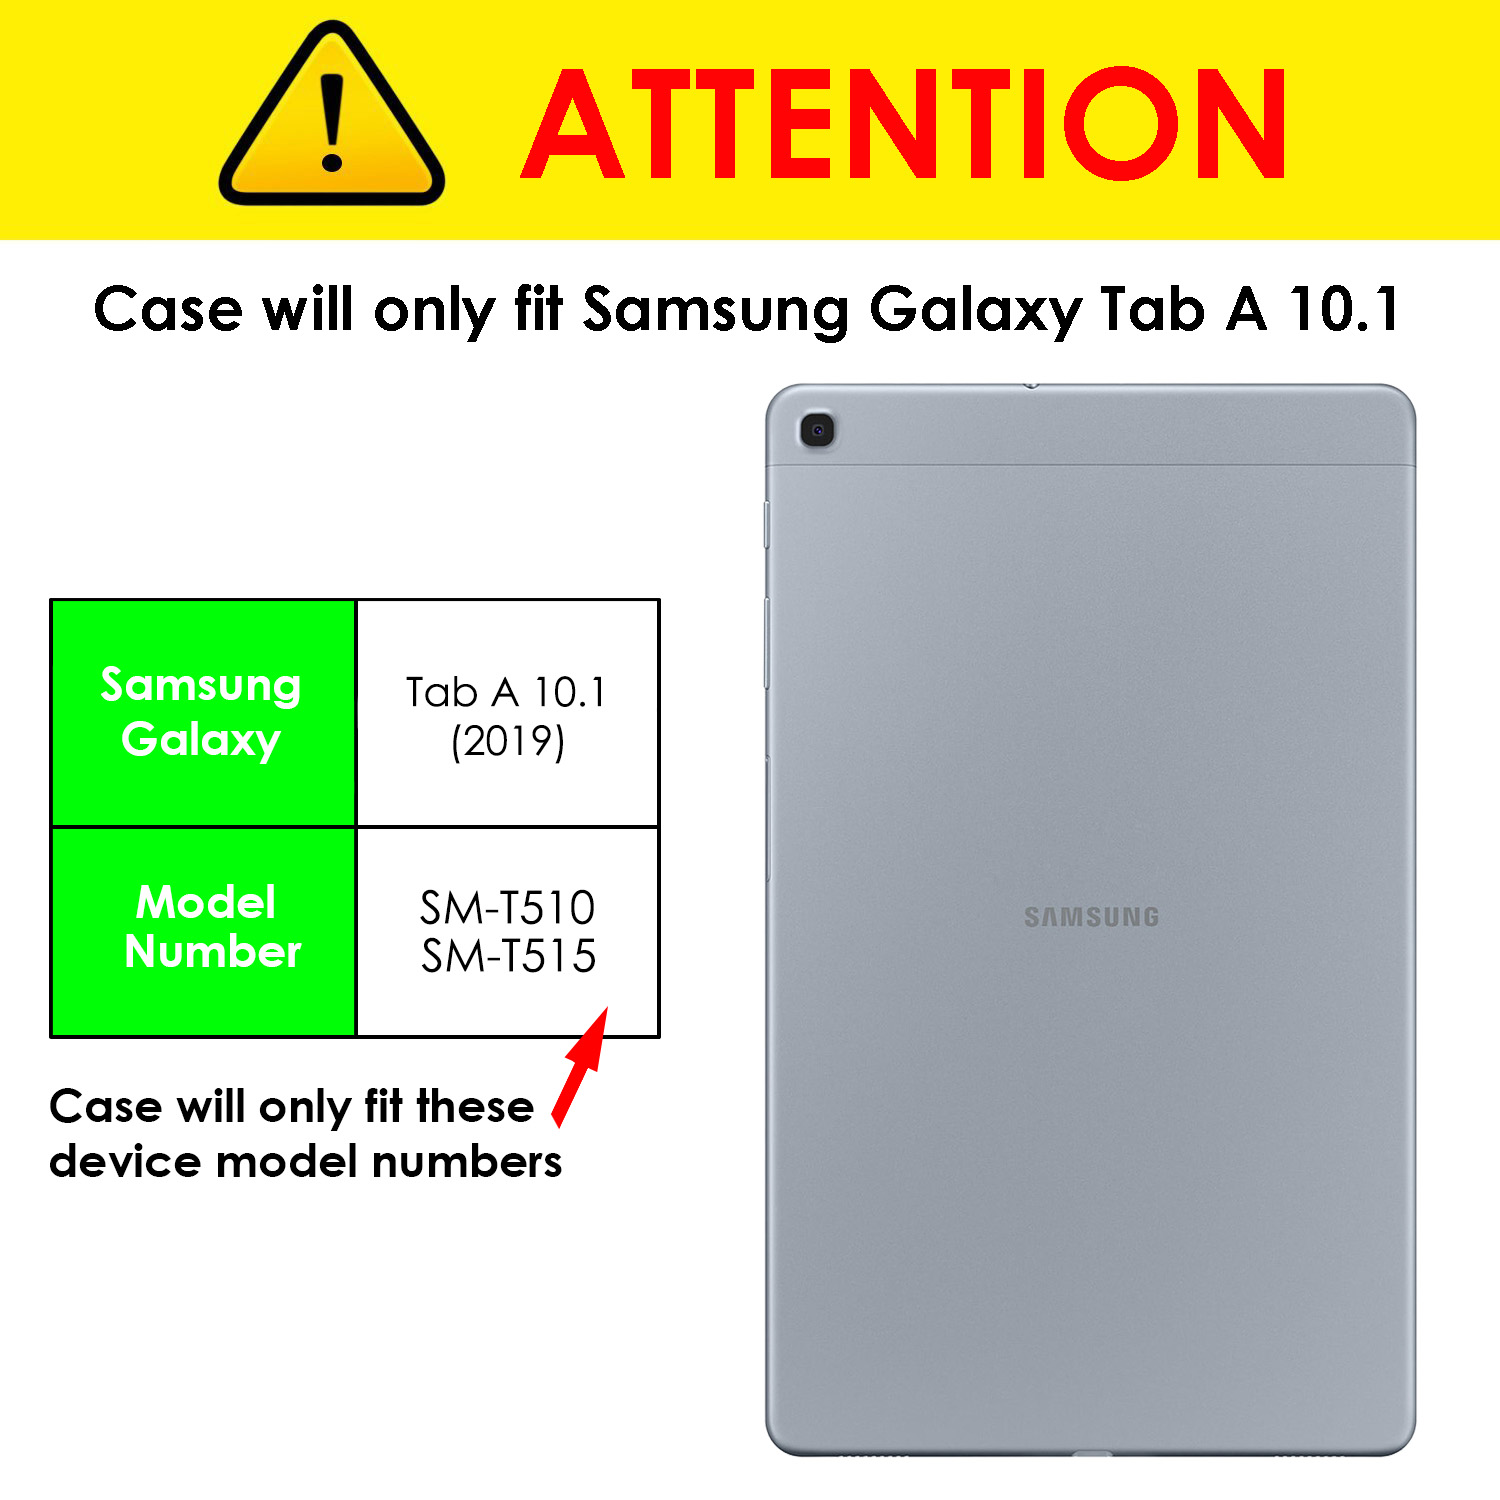 miniature 28 - Samsung Galaxy Tab A 10.1 2019 Étui Magnétique Protection & Support + Stylet